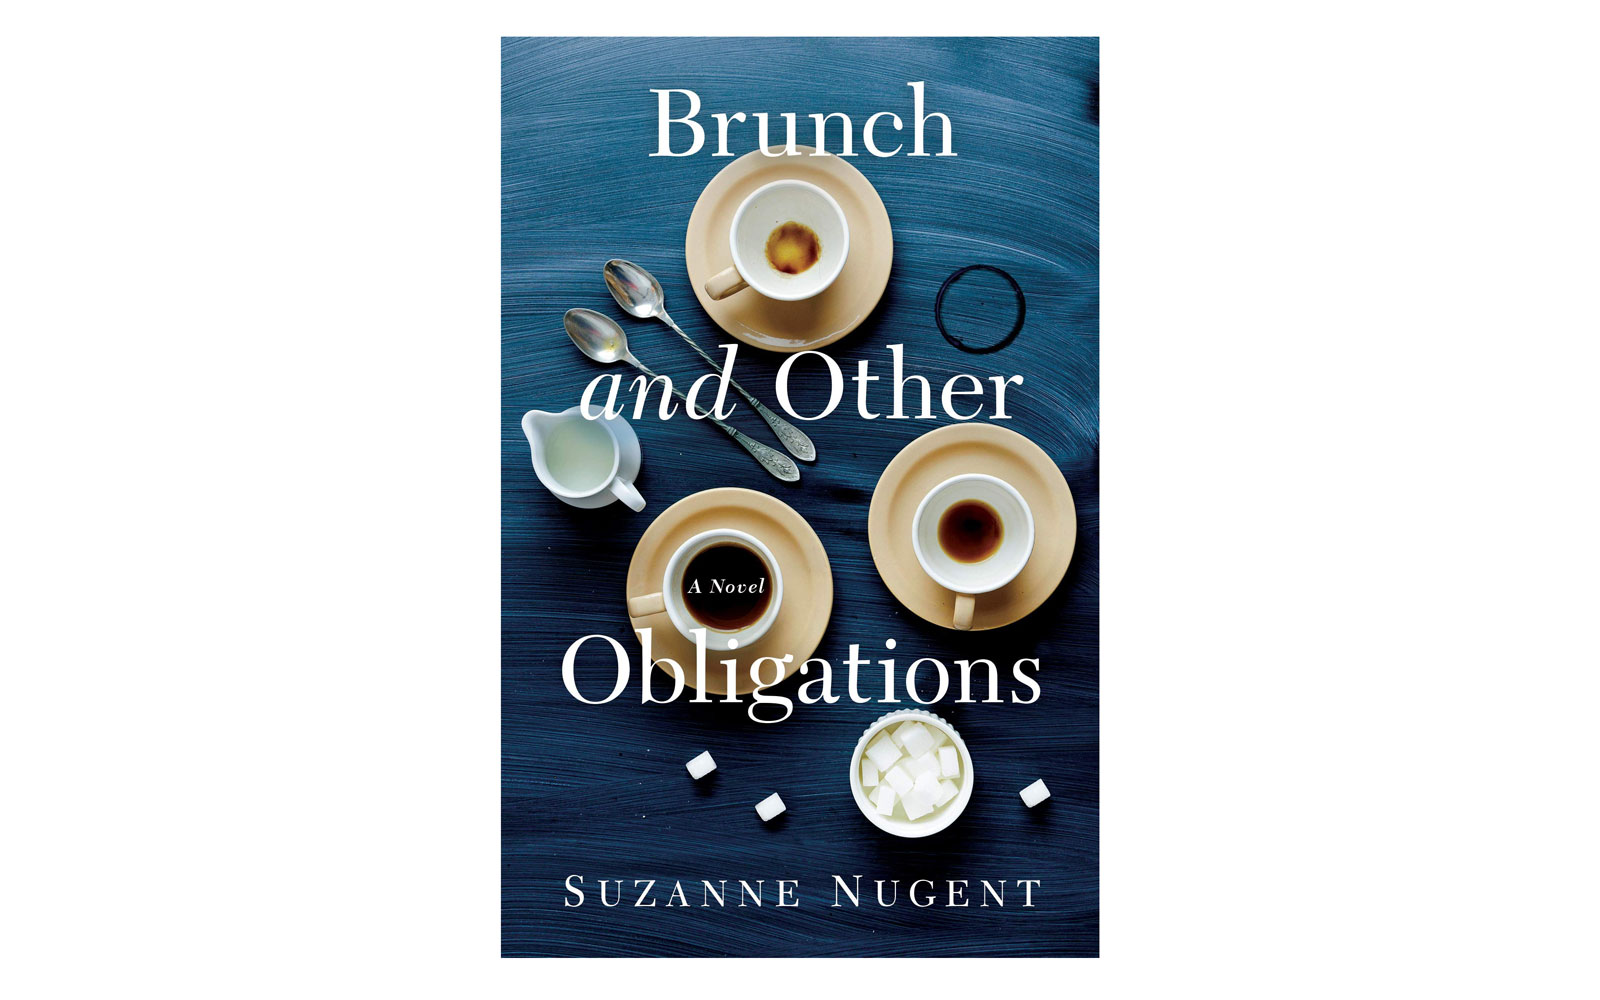 Brunch and Other Obligations